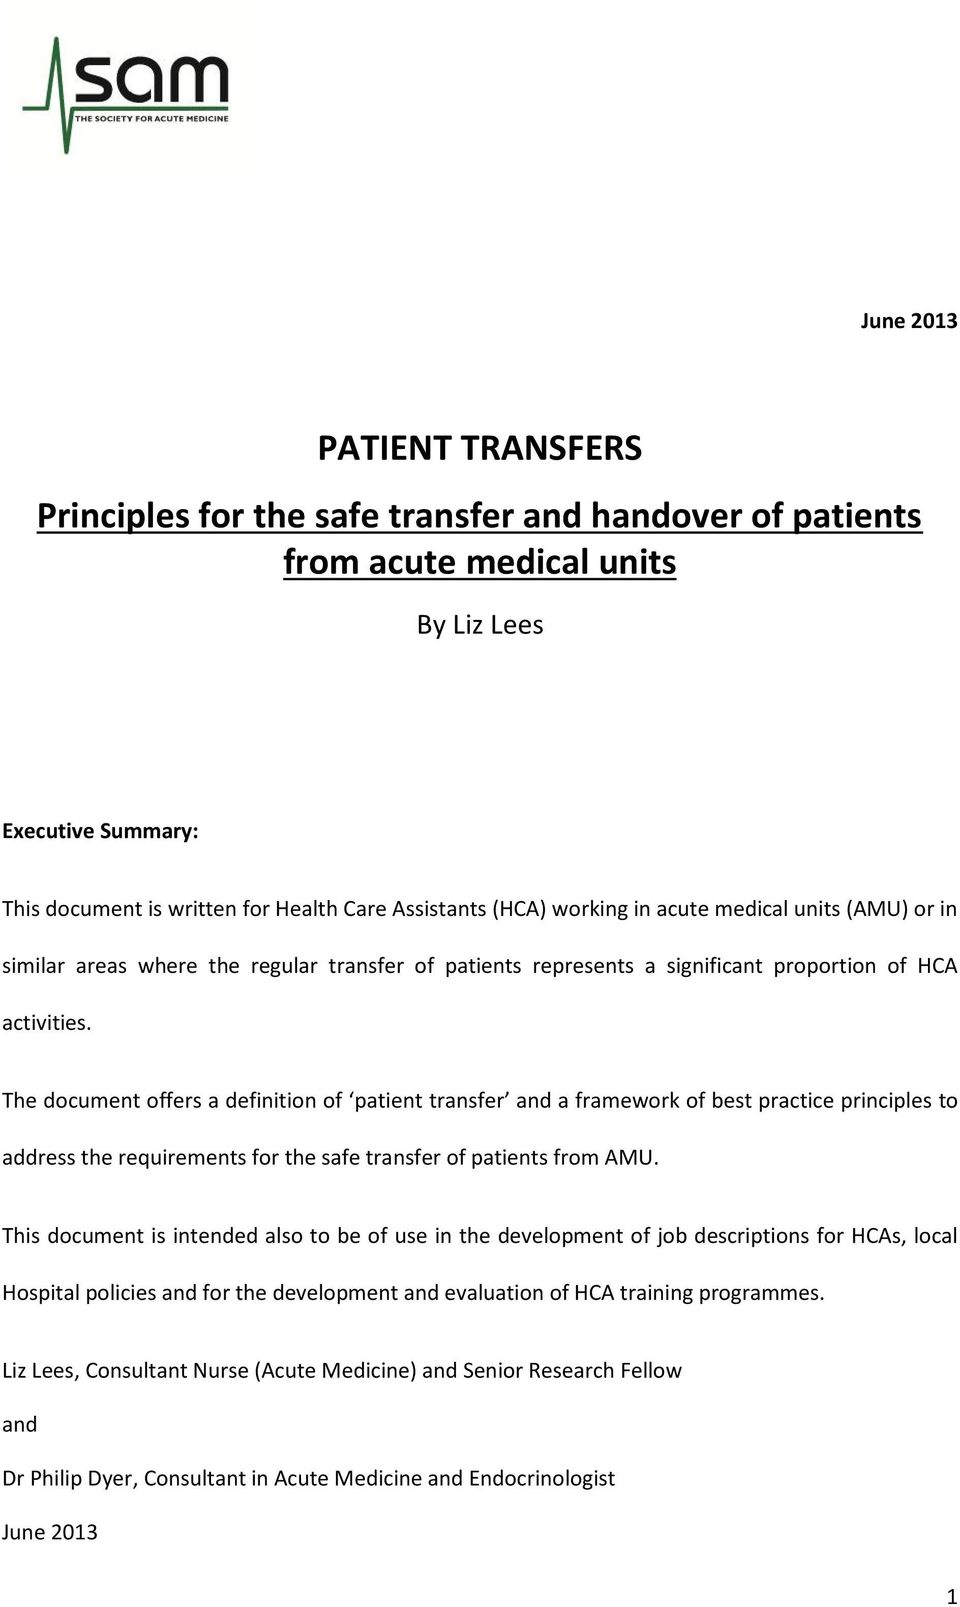 The document offers a definition of patient transfer and a framework of best practice principles to address the requirements for the safe transfer of patients from AMU.